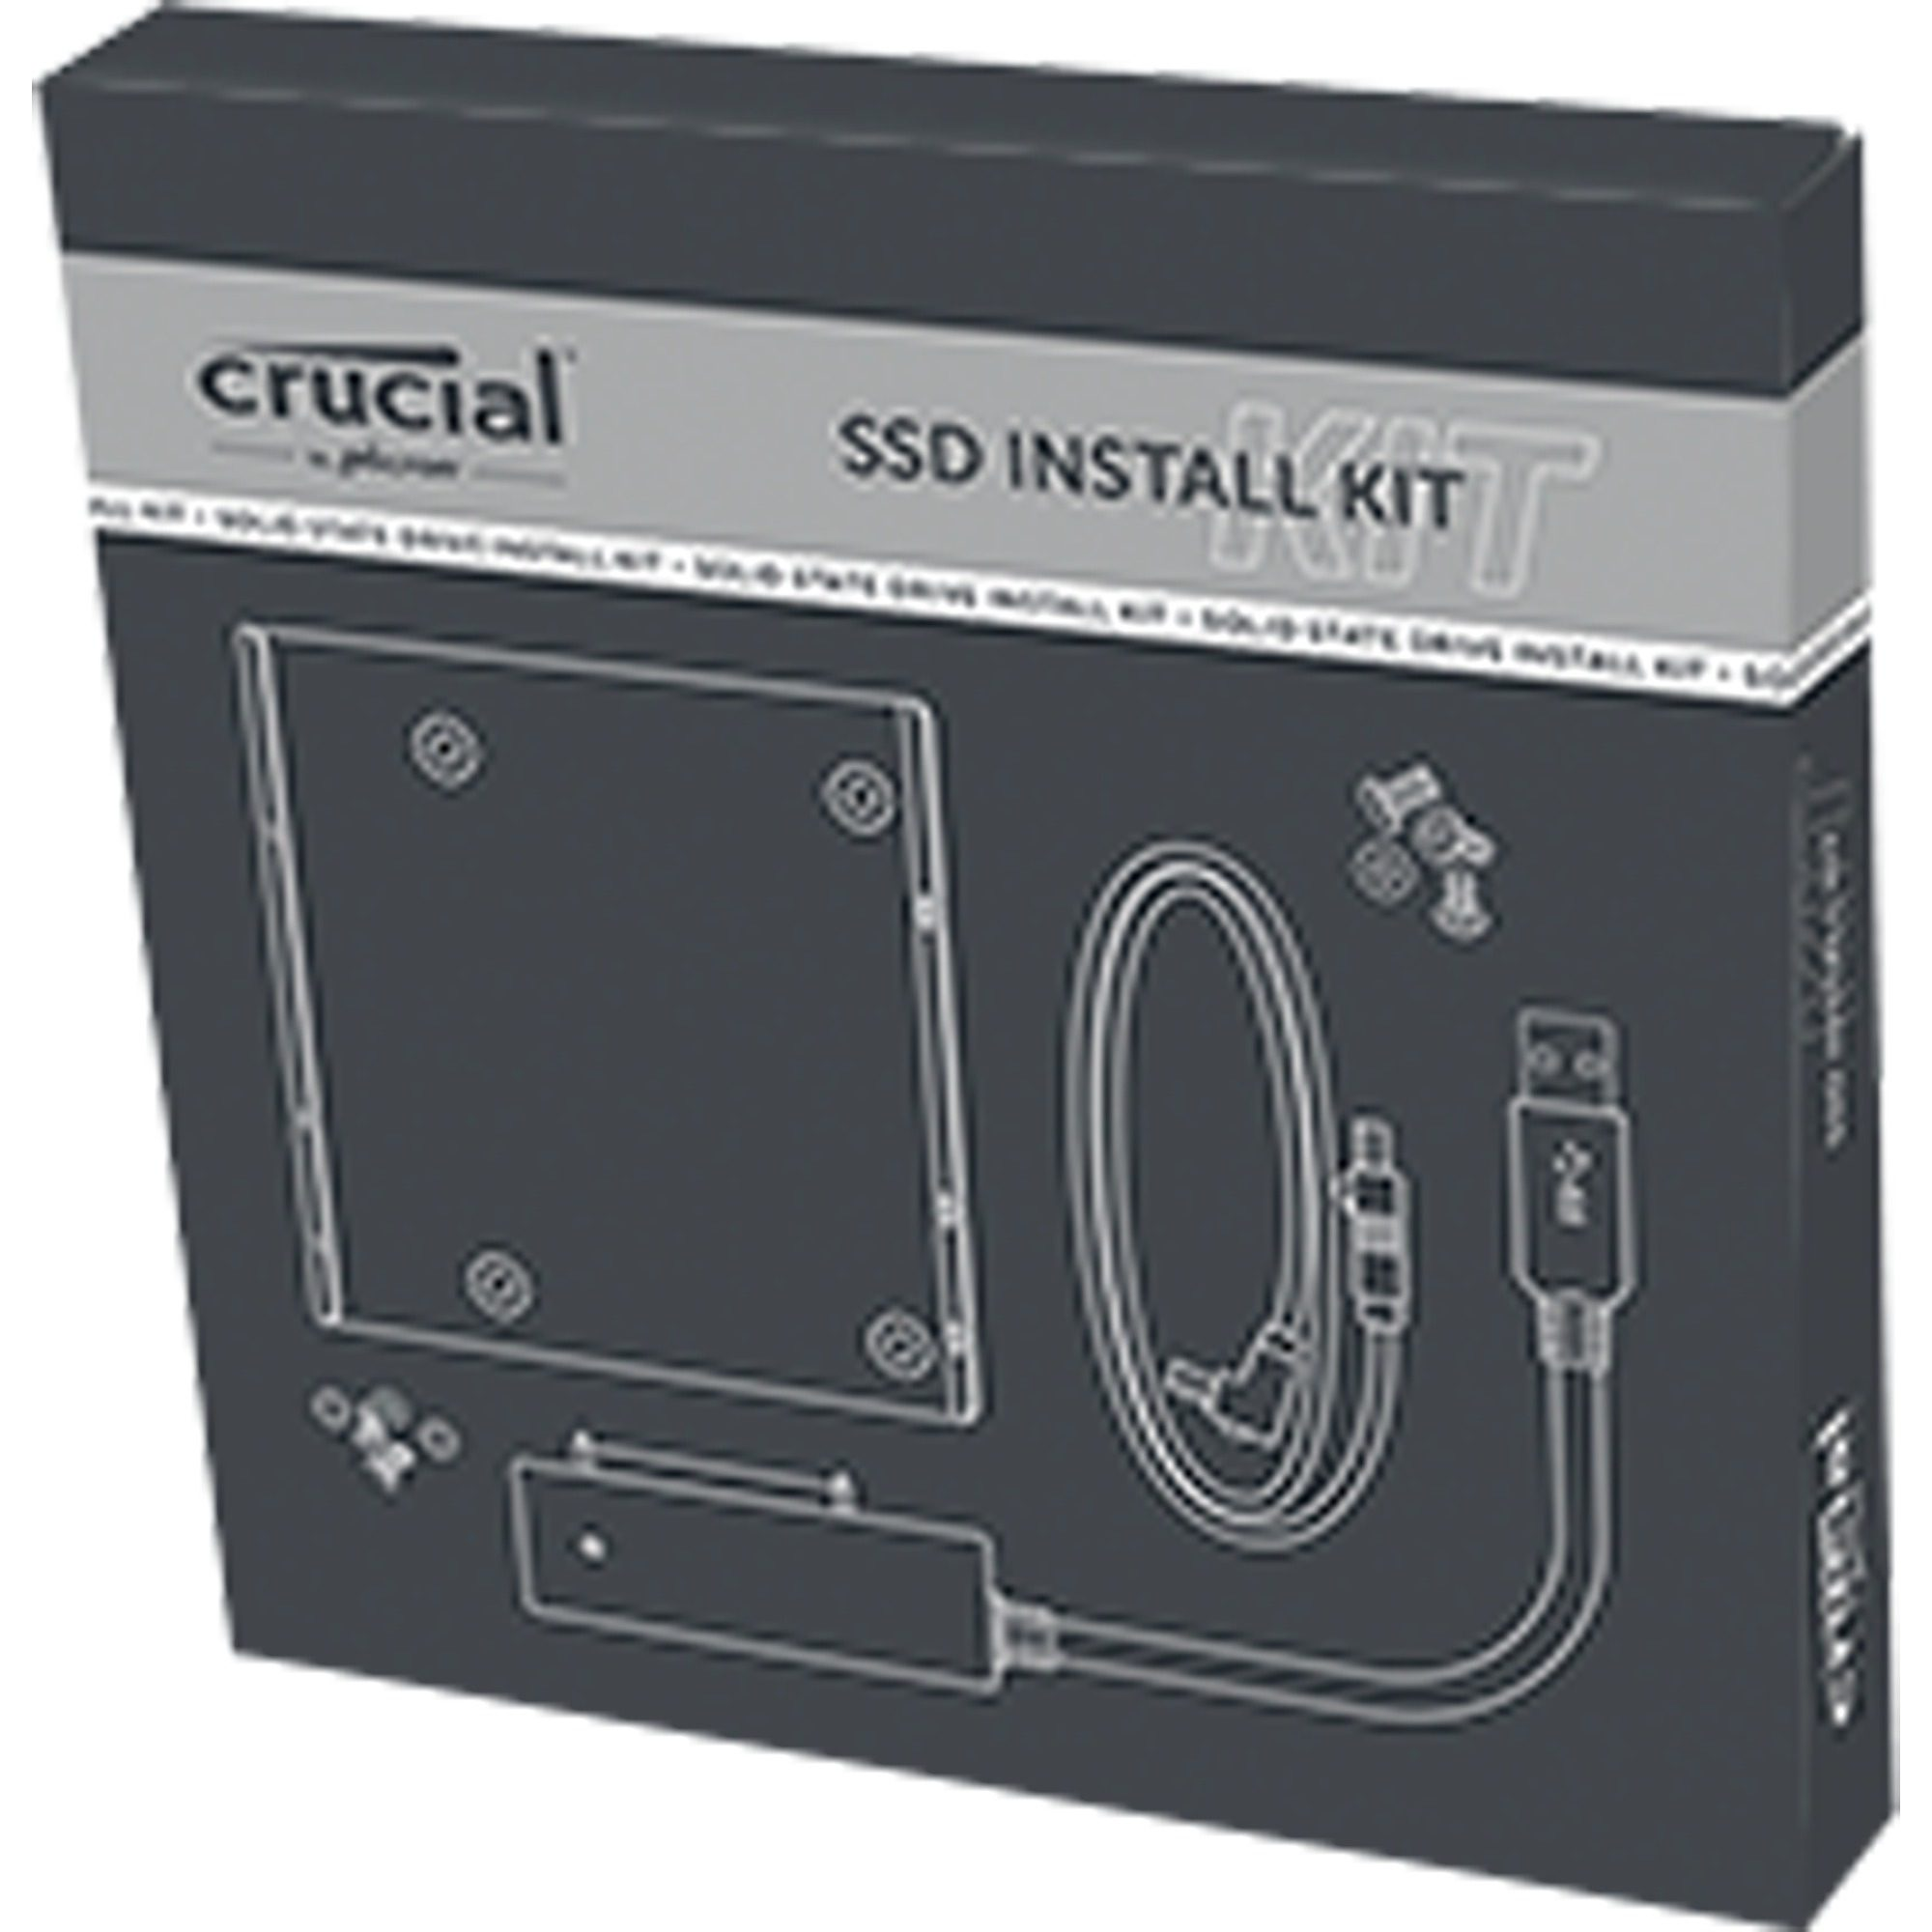 Crucial Adapter »Crucial SSD Install Kit«